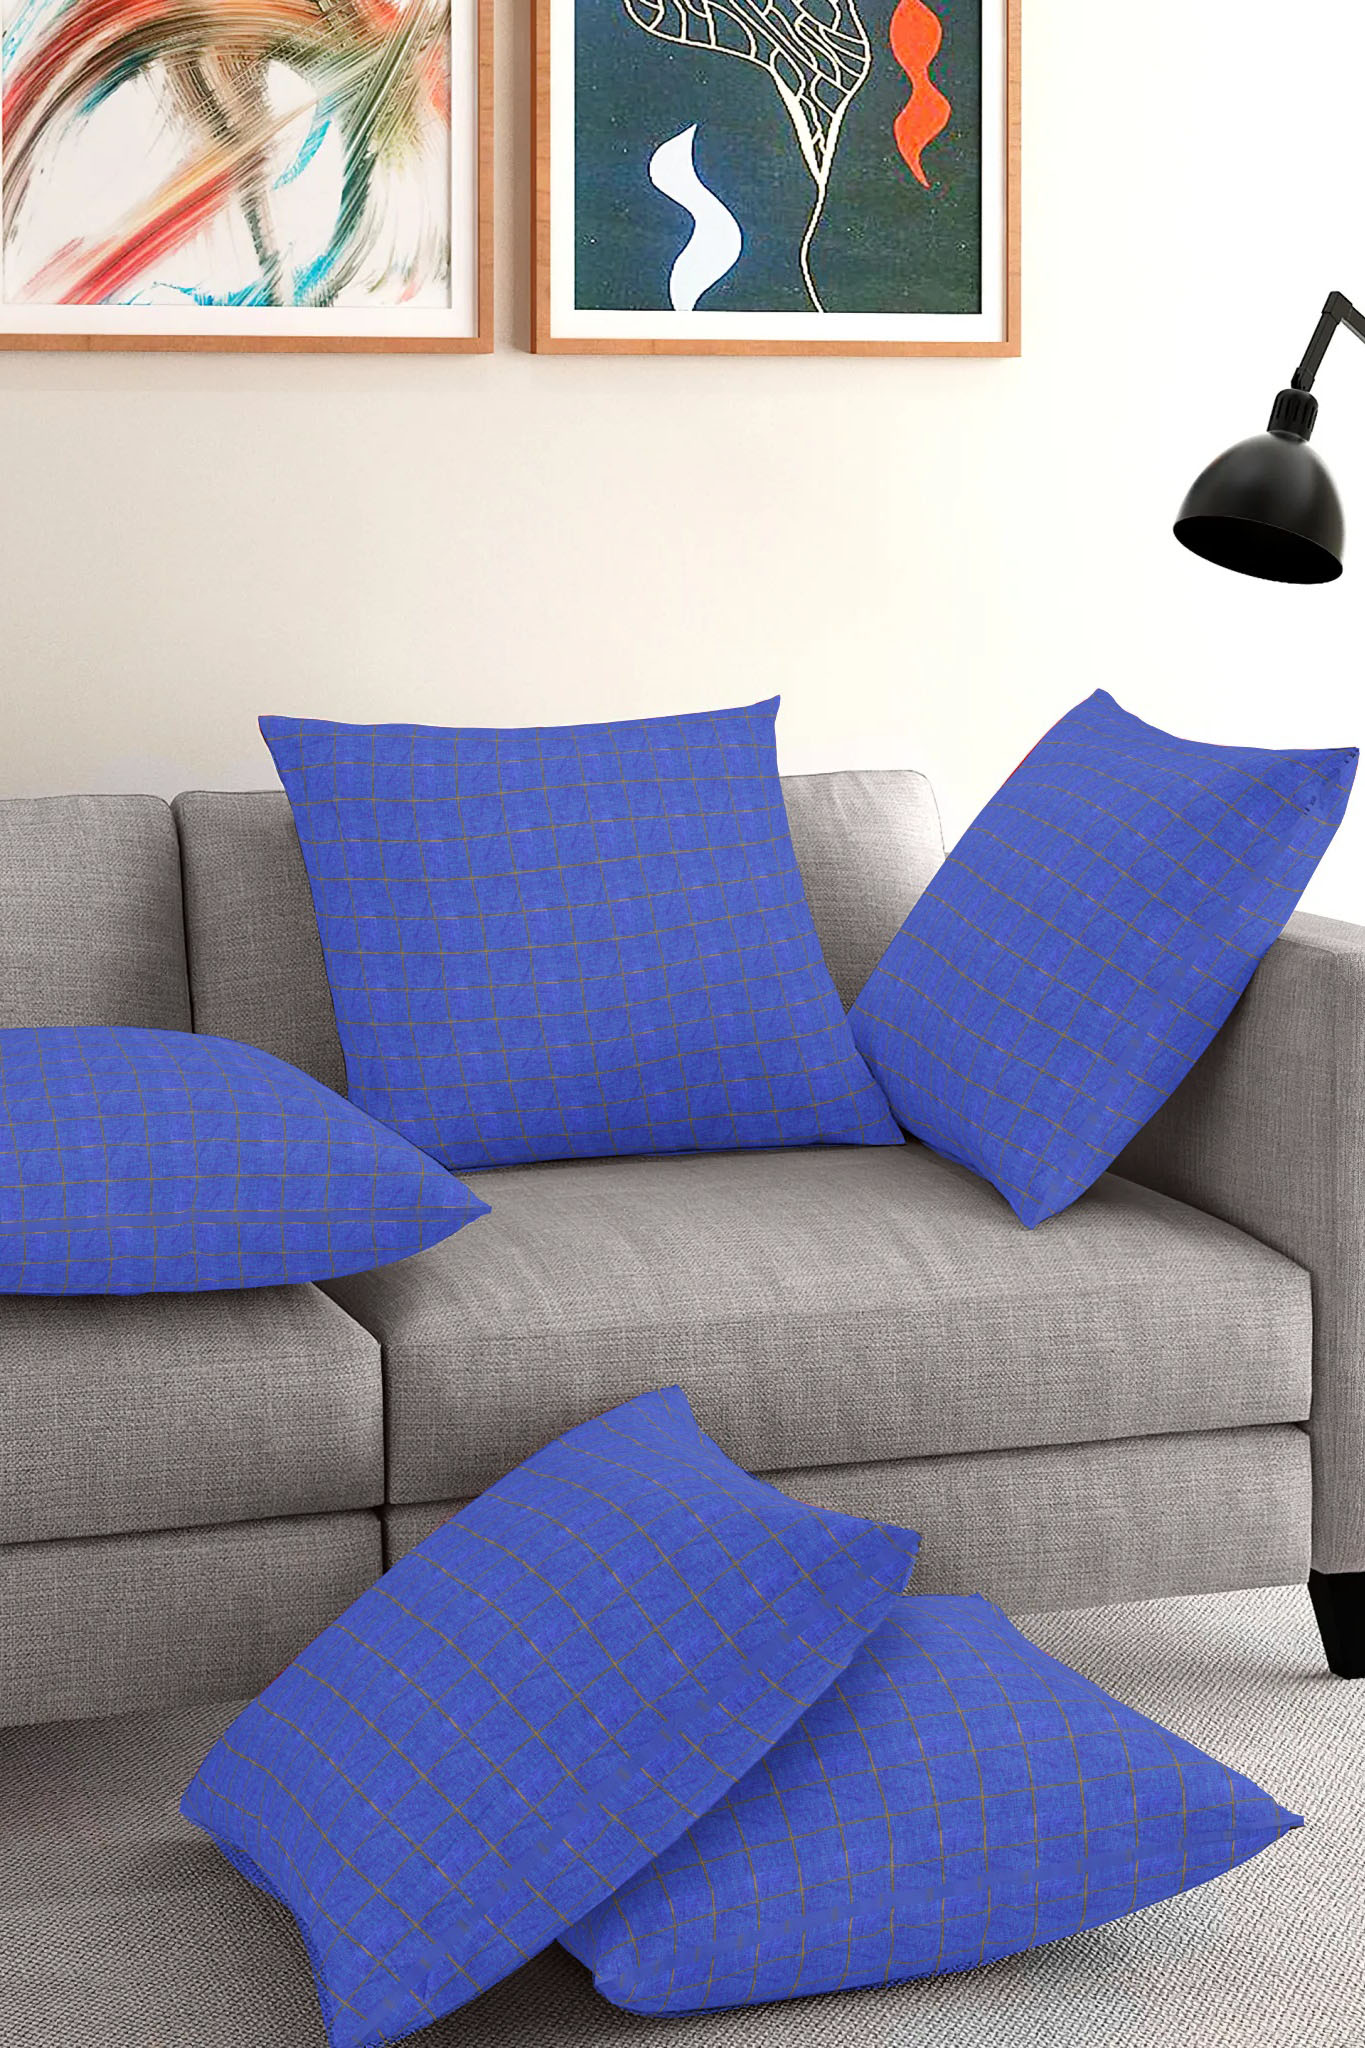 Set of 5-Blue Golden Cotton Cushion Cover-35388-16x16 Inches